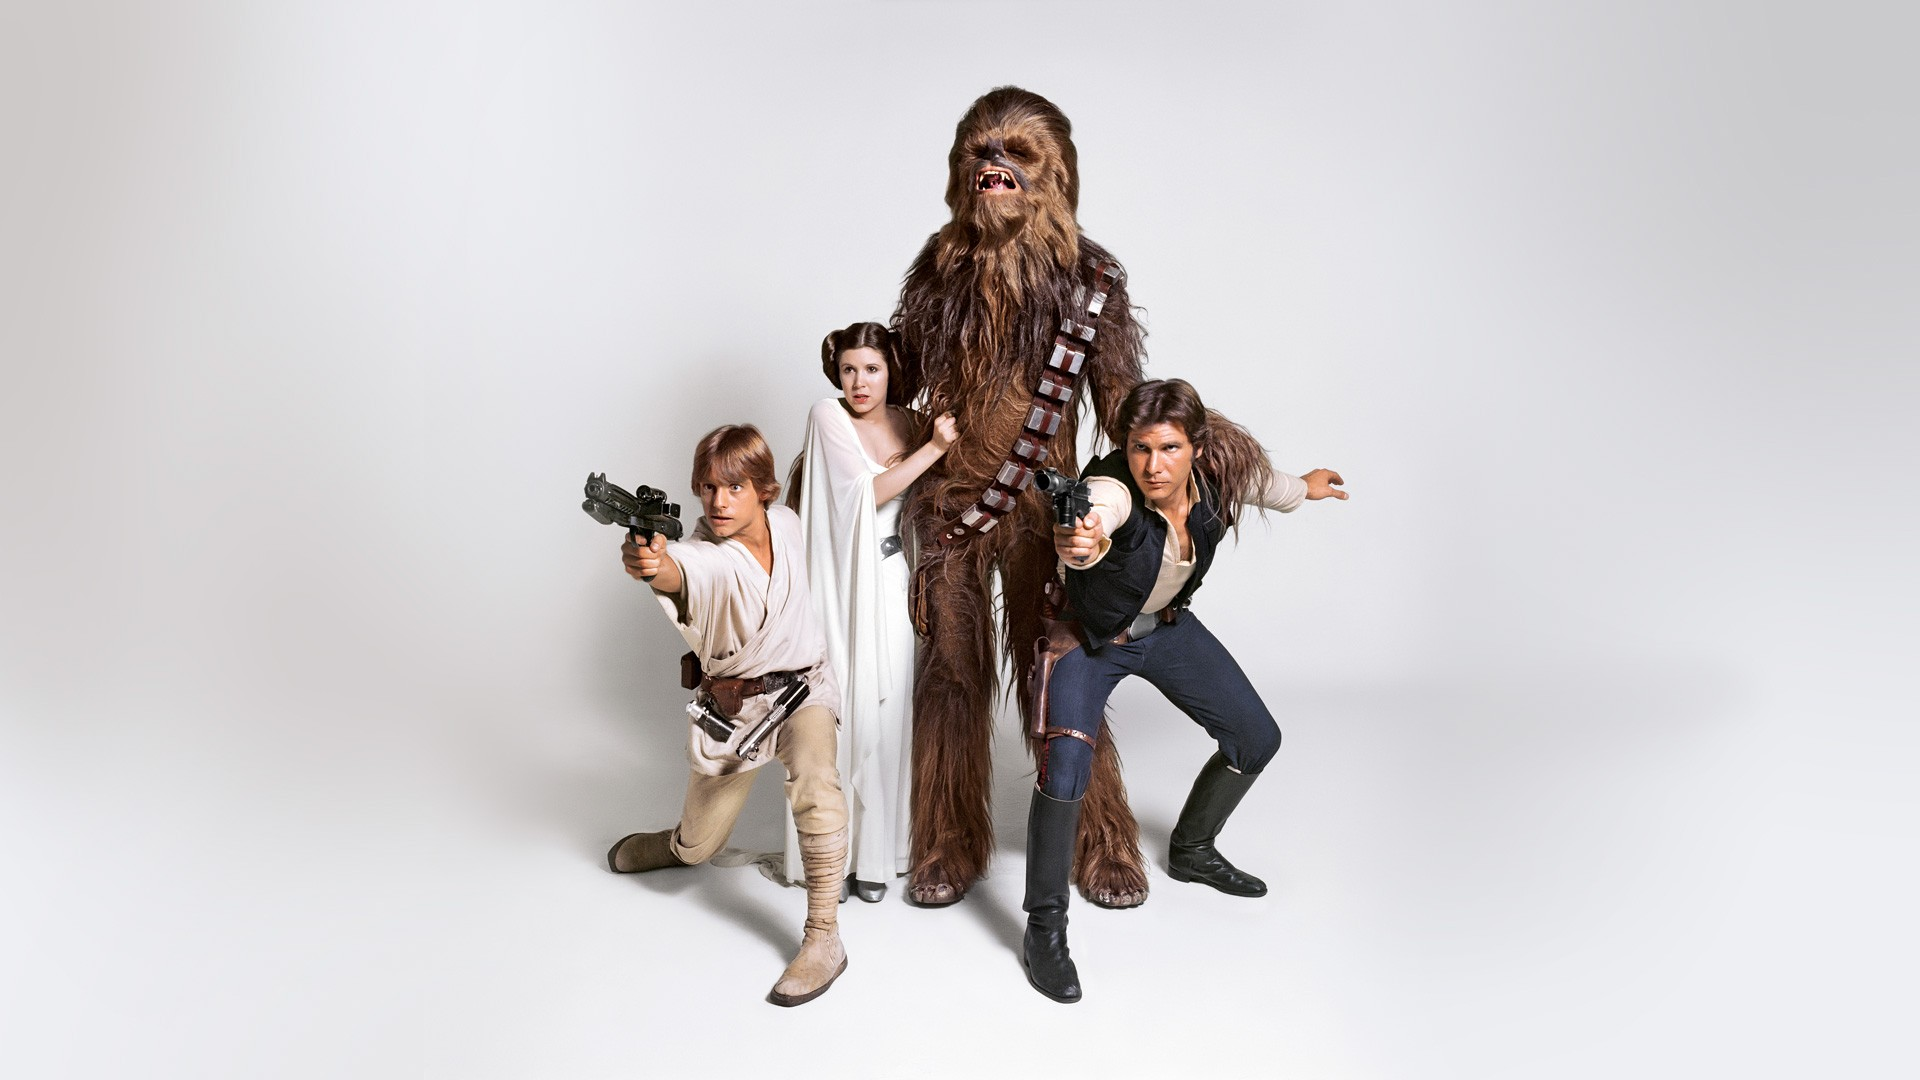 Luke Skywalker (Mark Hamill), Princess Leia (Carrie Fisher), Chewbacca (Peter Mayhew), and Han Solo (Harrison Ford)